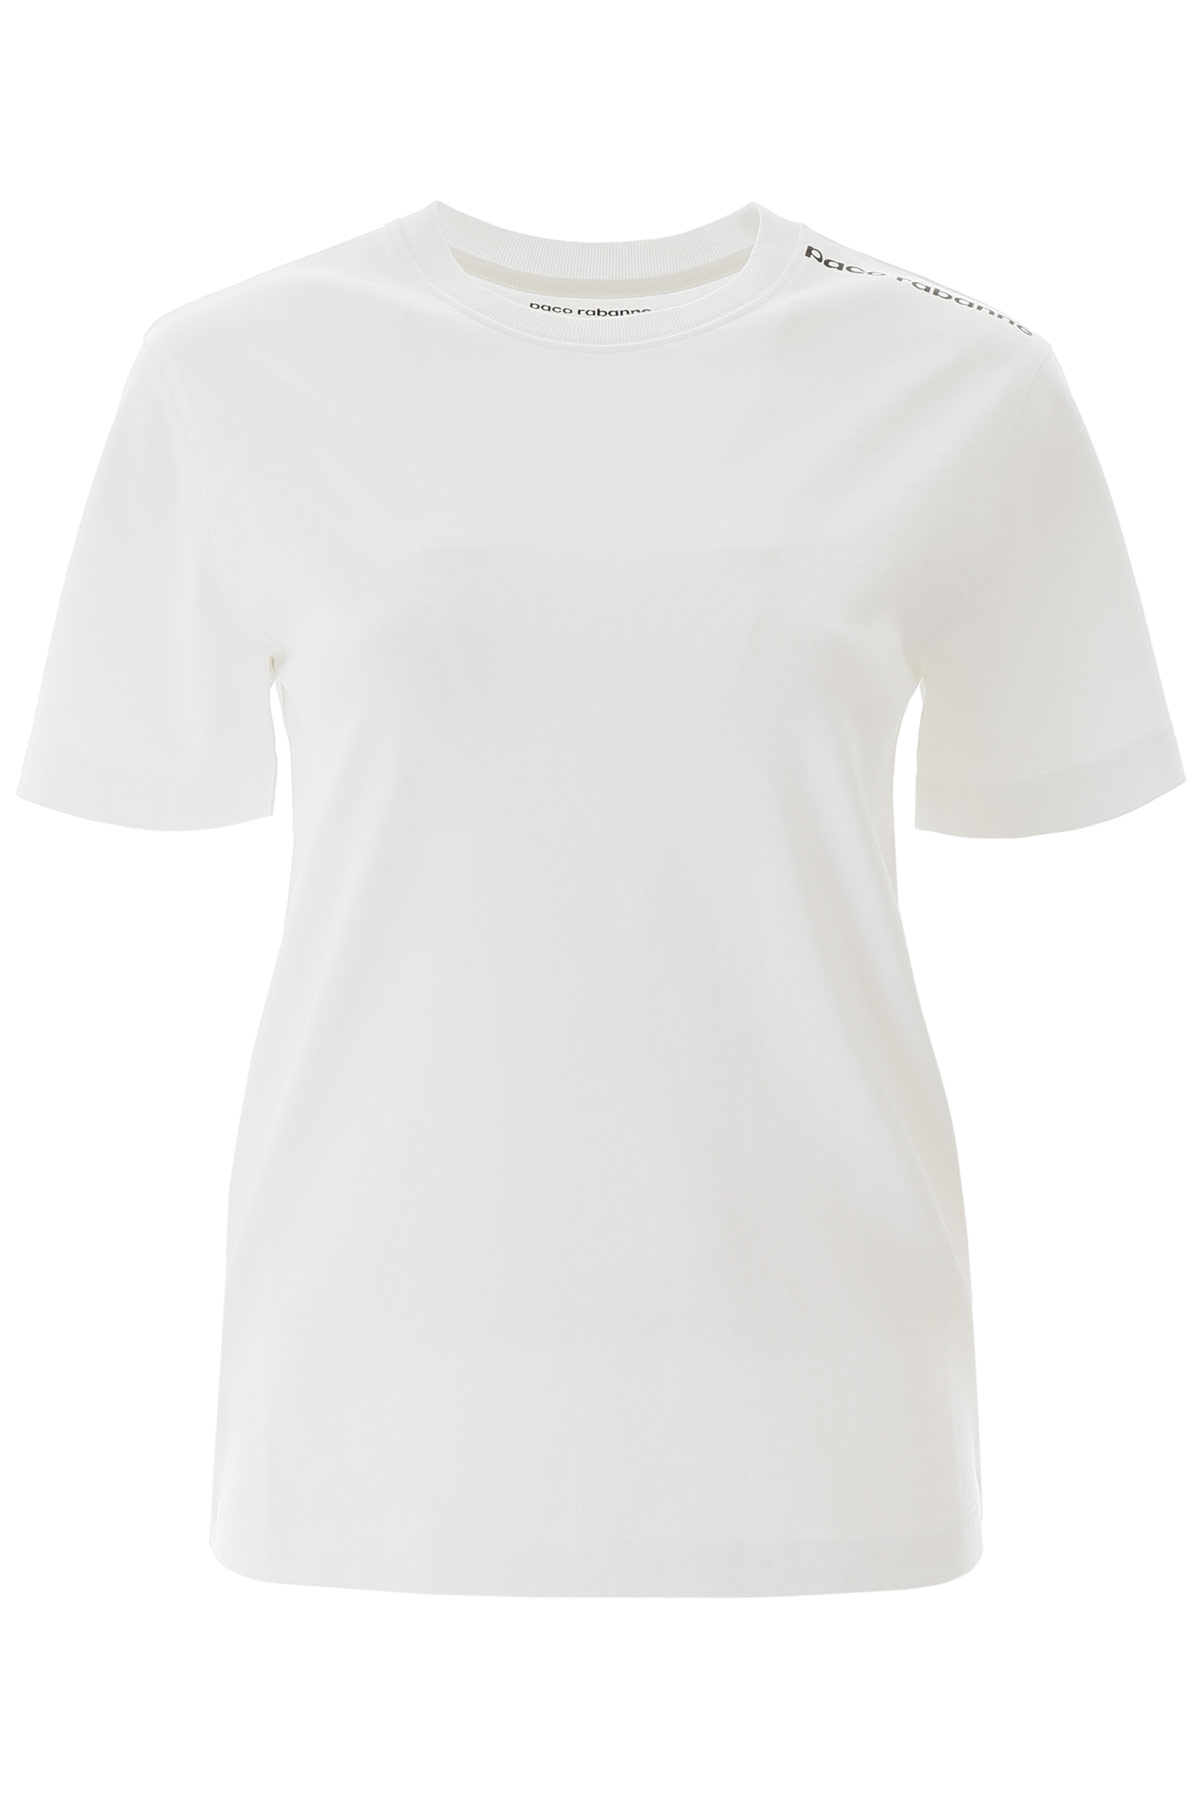 PACO RABANNE T-SHIRT WITH LOGO ON ONE SHOULDER L White Cotton